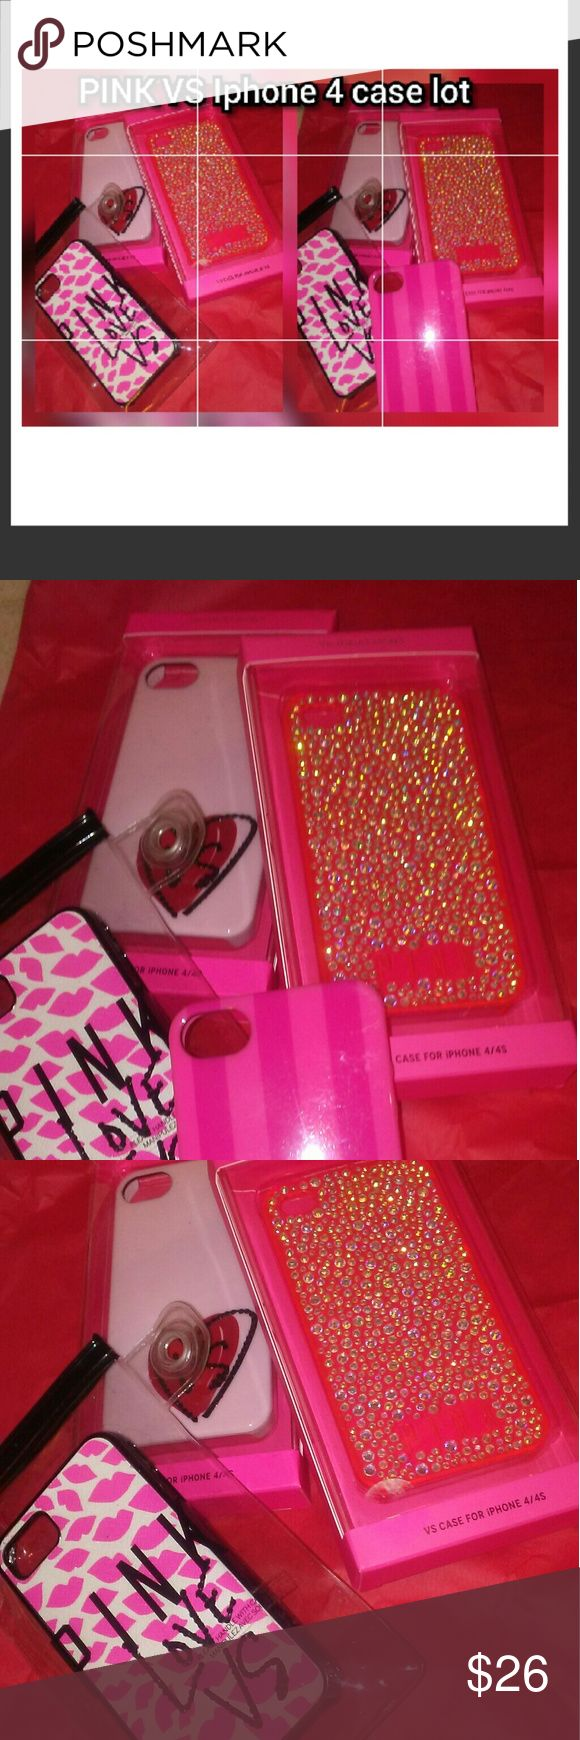 🎁VICTORIA'S SECRET VS PINK LOT OF 4 PHONE CASES 💝VICTORIA'S SECRET VS PINK iPhone 4 CASES BUNDLE 💝2 ARE IN ORIGINAL BOX, EUC 💝ONE IN REFURBISHED PLASTIC CASE, EUC 💝ONE IS A FREEBIE (THE STRIPED) BECAUSE IT'S VERY USED 🎁BUNDLE OR MAKE OFFER Victoria's Secret Accessories Phone Cases